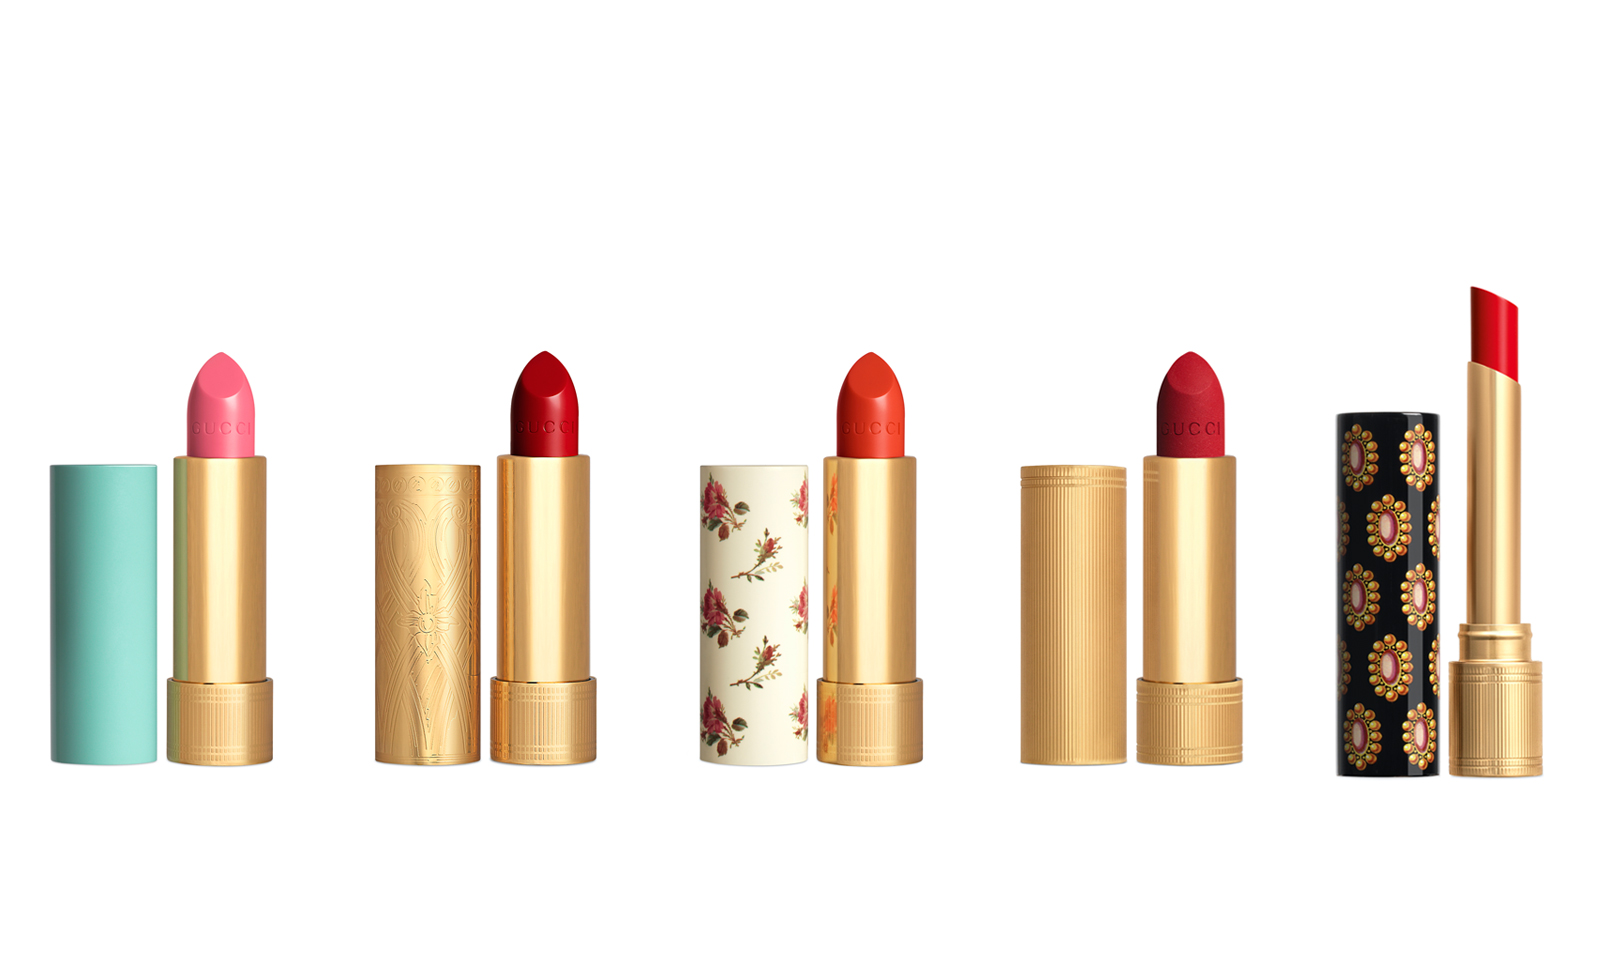 GUCCI BEAUTY Makeup Collection